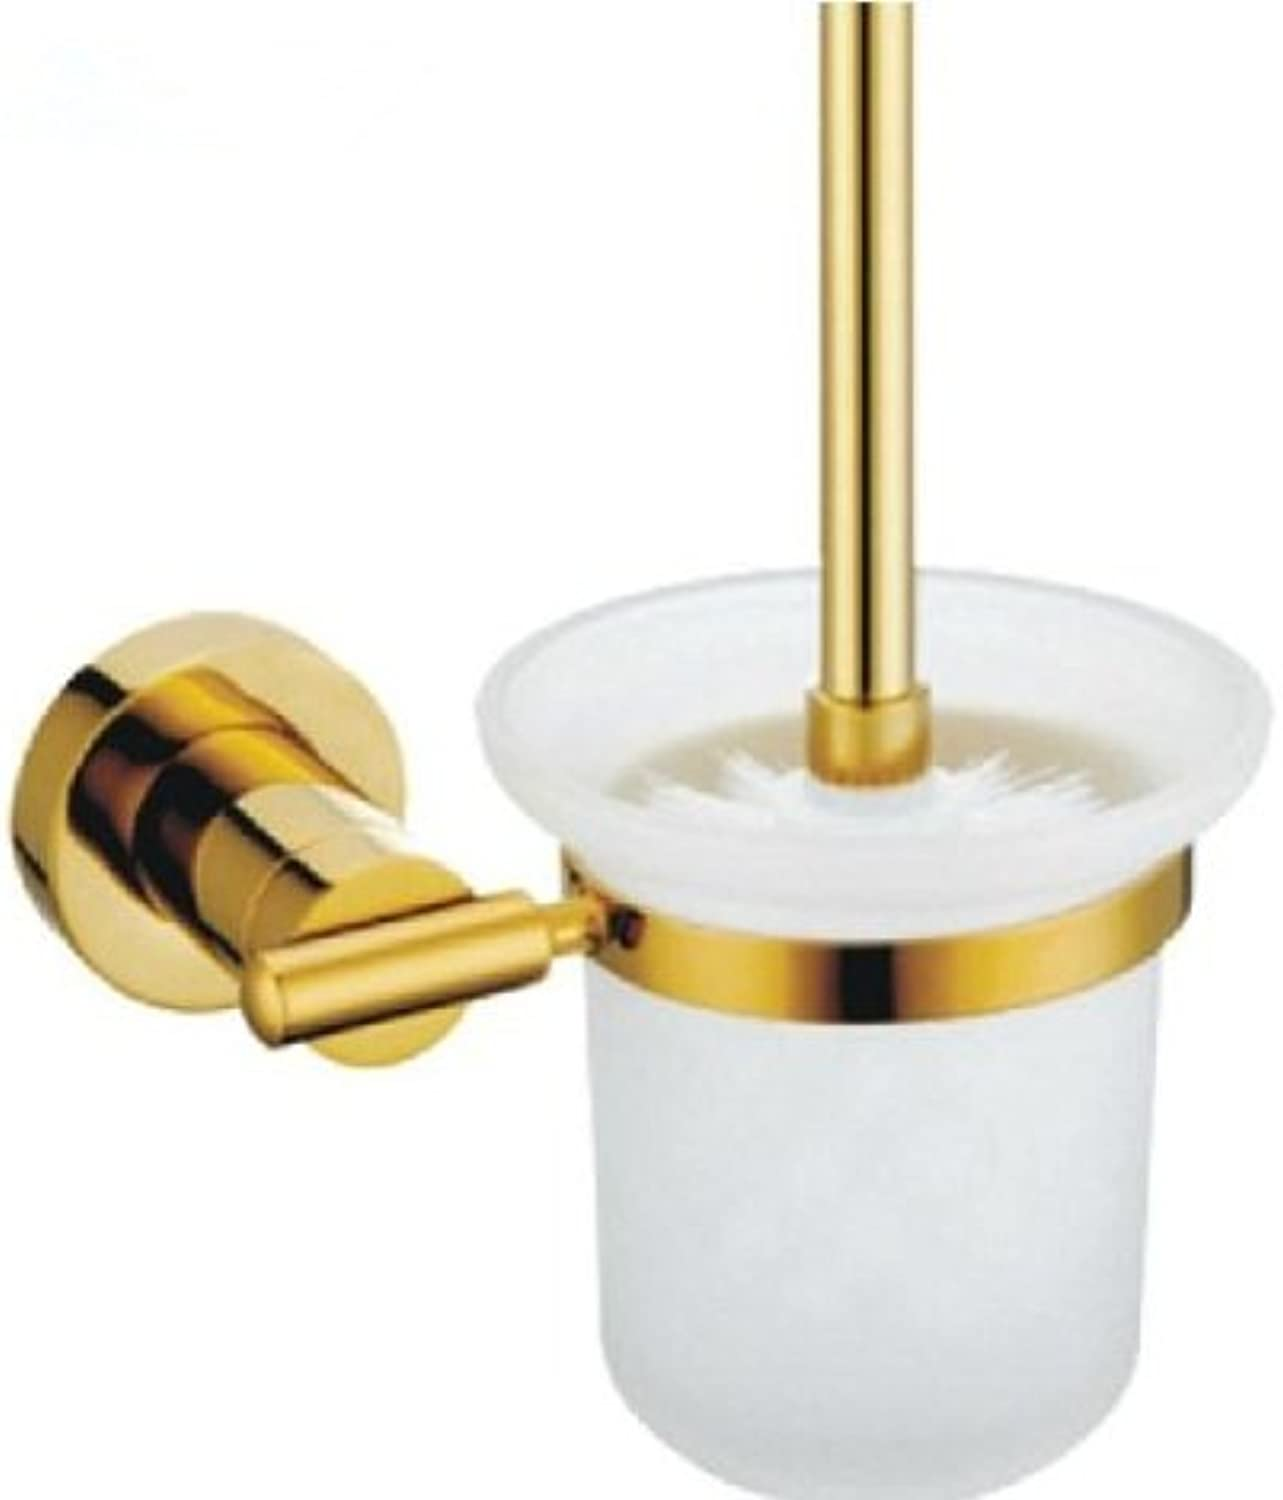 TACCY Bathroom Toilet Brush with Frosted Glass Cup and Brass Holder in Polished gold Finish  MT99A